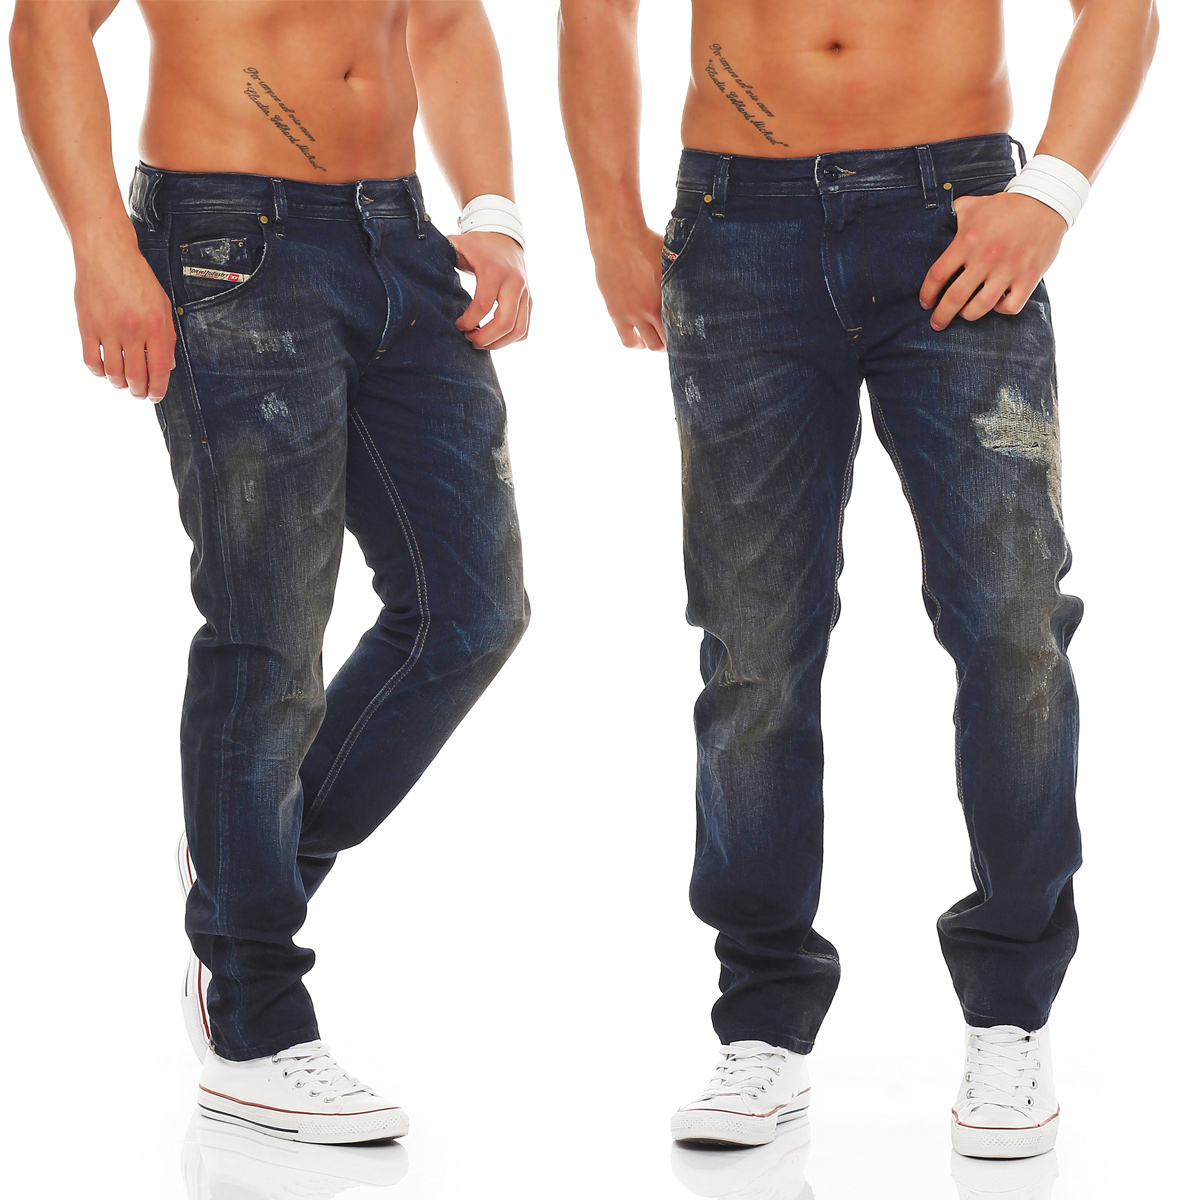 diesel jeans krayver herren regular slim carrot hose dna mutation kollektion neu ebay. Black Bedroom Furniture Sets. Home Design Ideas